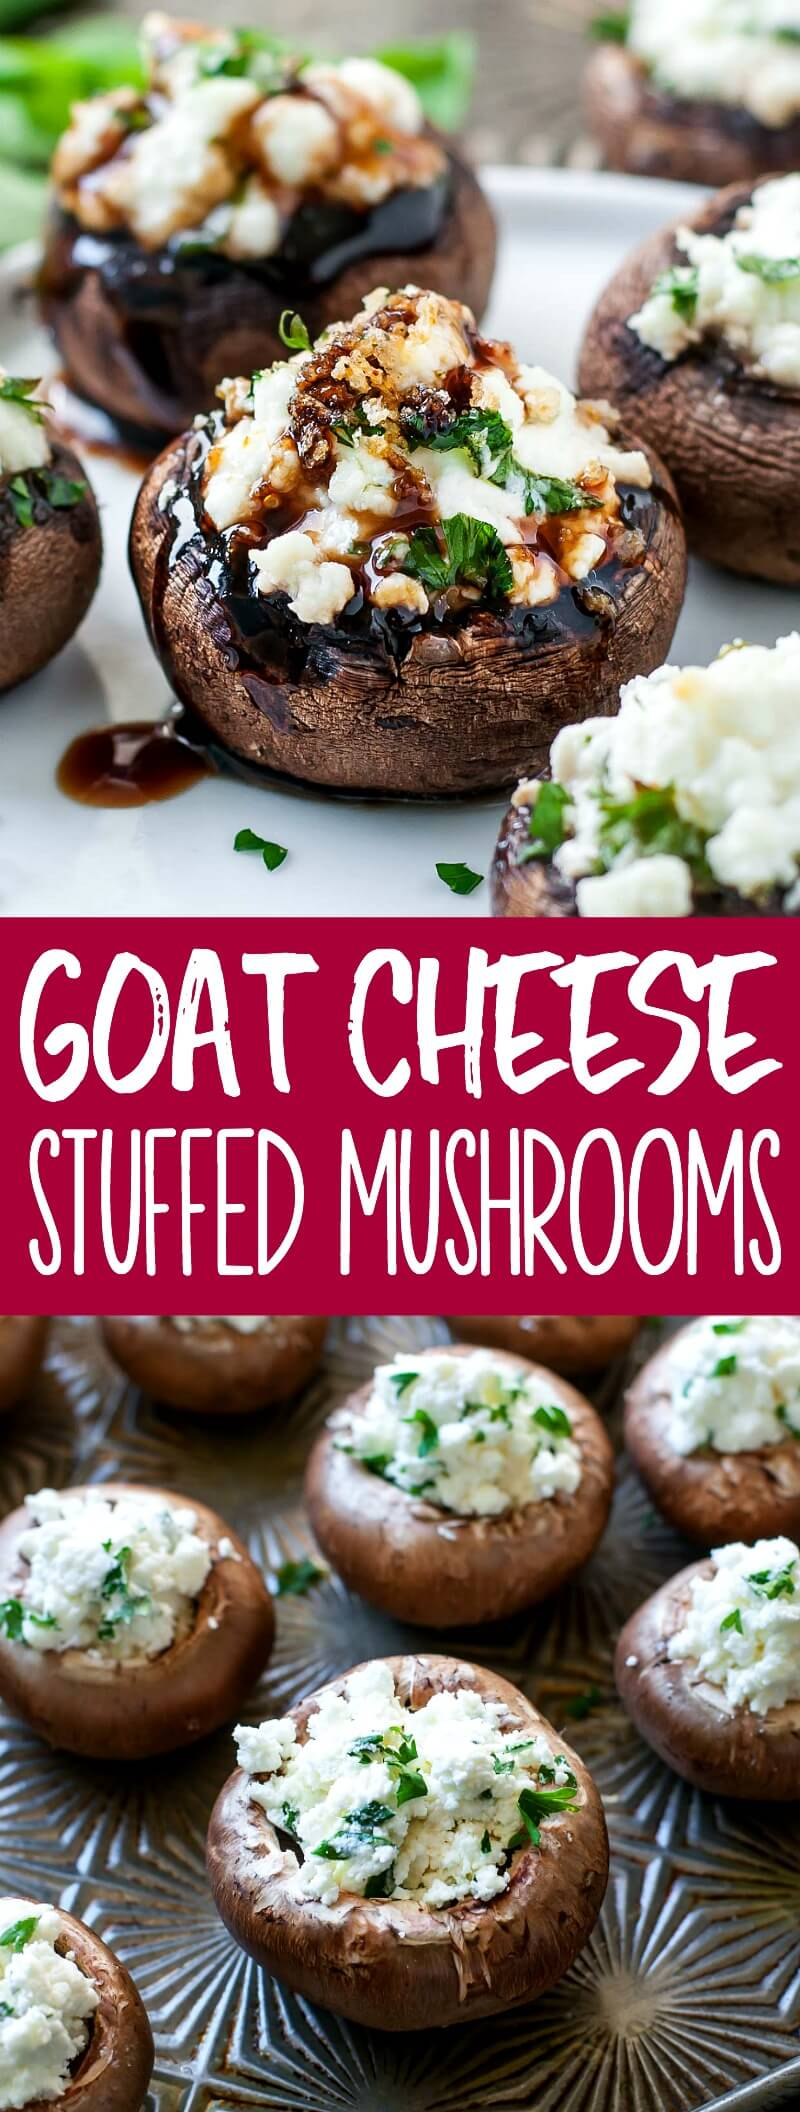 Let's jazz up our appetizer game! These herbed goat cheese stuffed mushrooms are piled high with savory whipped goat cheese, spiked with fresh herbs, and drizzled with a sweet + savory balsamic reduction to make them over-the-top delicious. #appetizer #partyfood #stuffedmushrooms #mushrooms #goatcheese #vegetarian